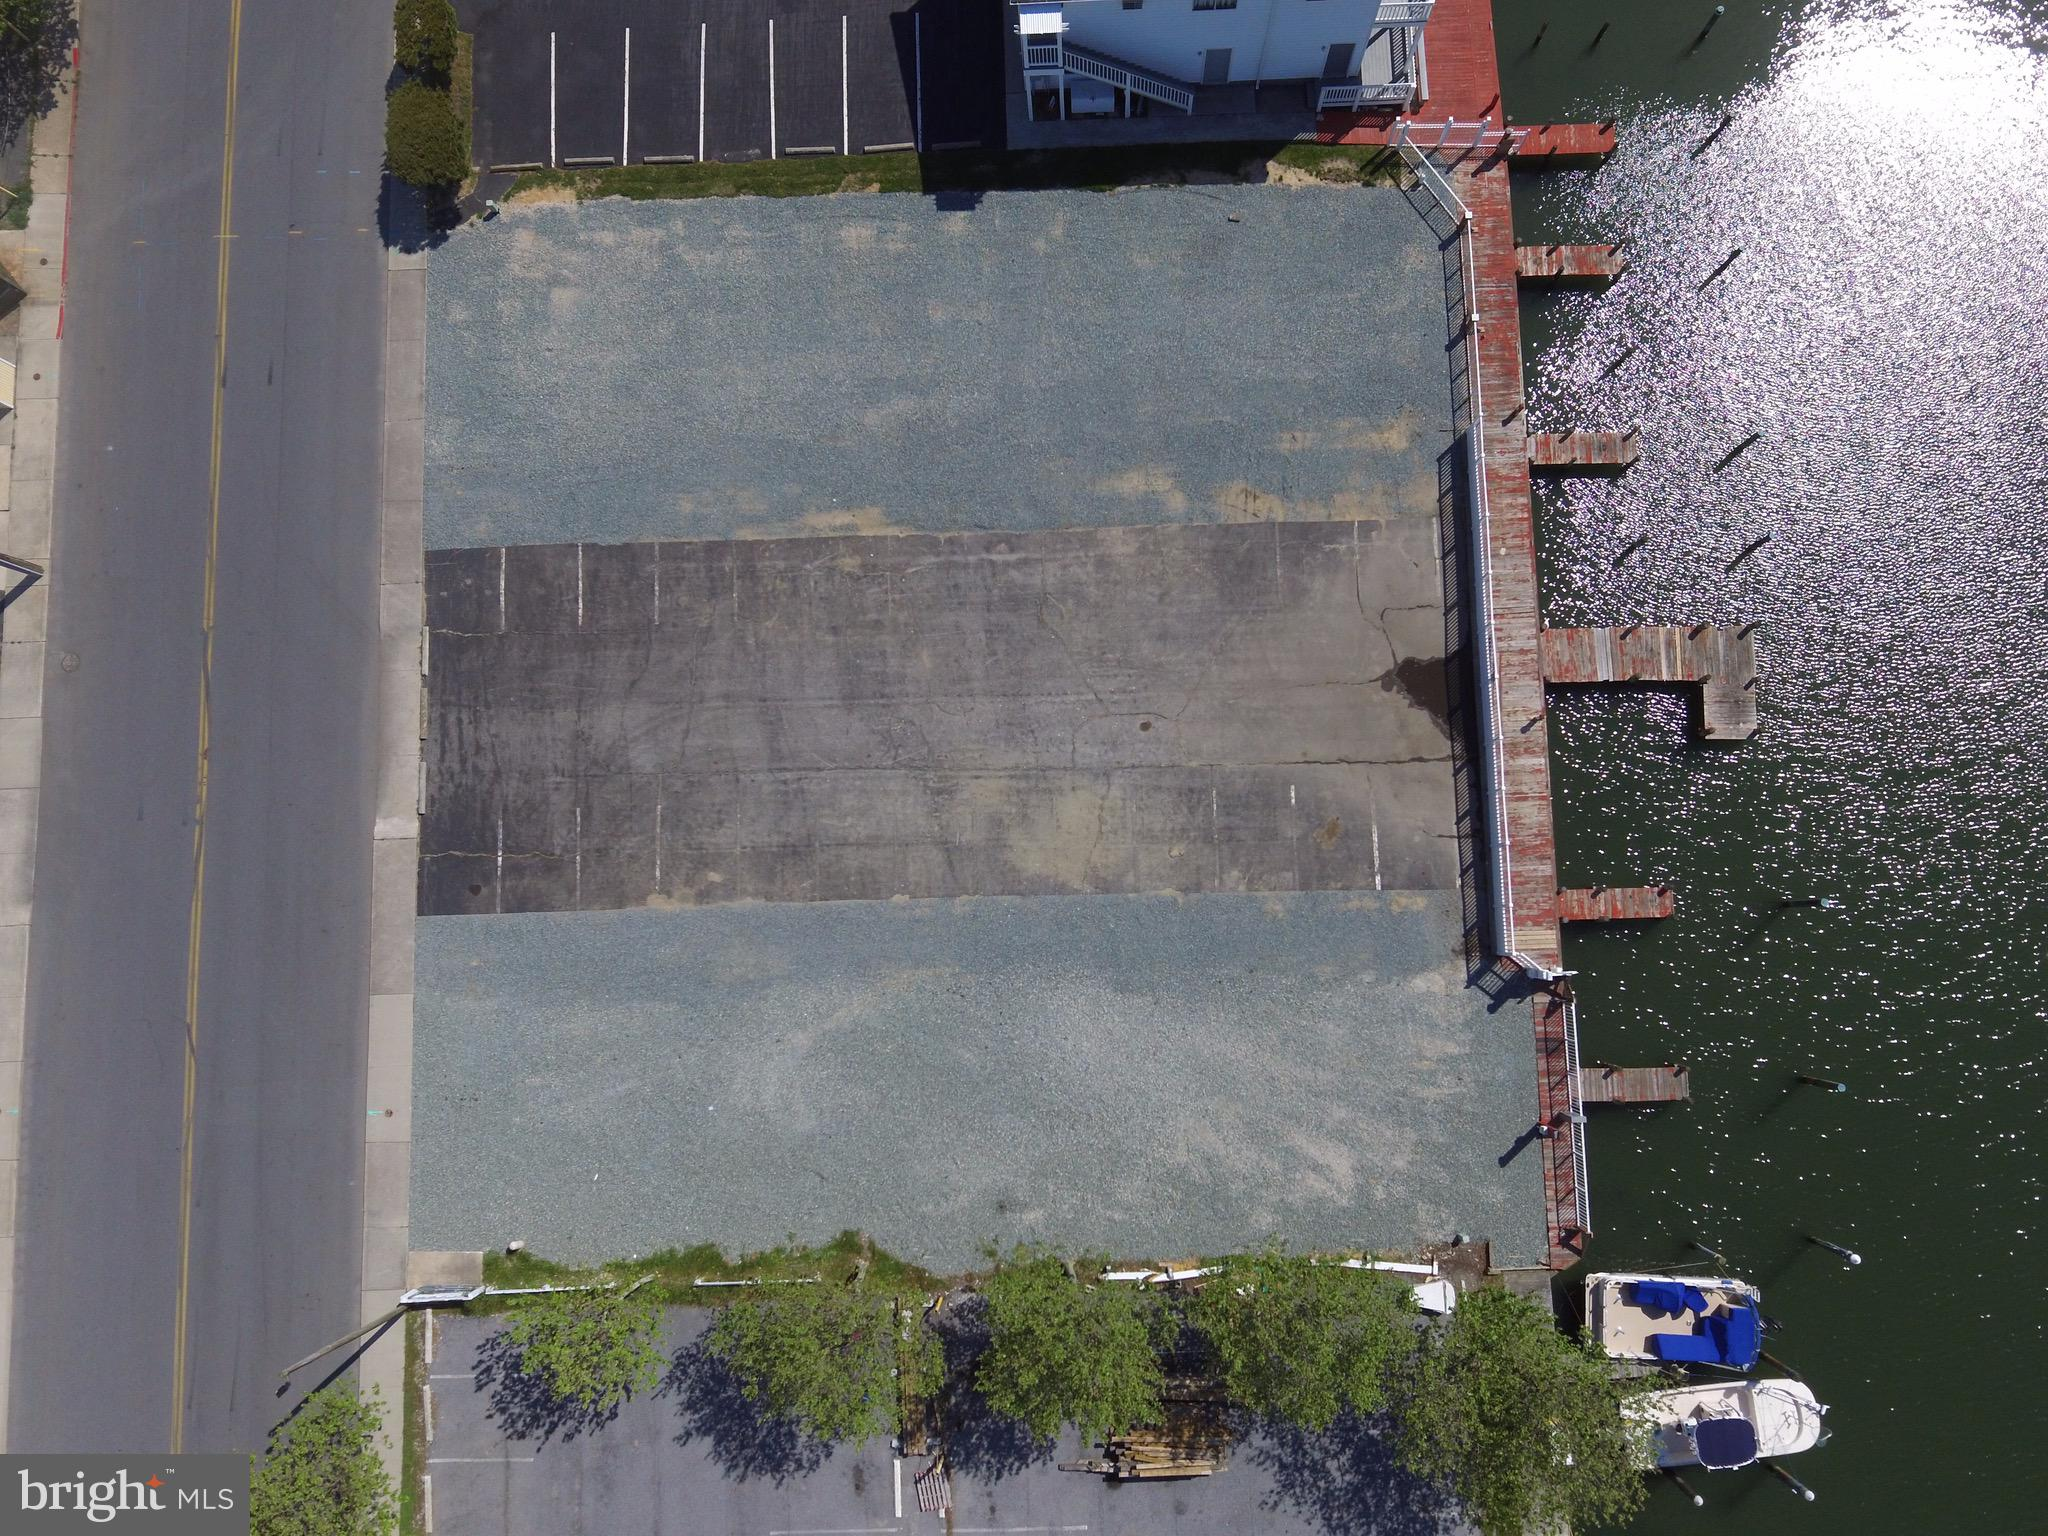 Great opportunity to own 1 or 2 lots-125 and 126 on the waterfront in Downtown Ocean City. 16,250 sq. ft. of LC1 commercial zoned property on Herring Way. This was part of the Islander Motel and the owner demolished the buildings and manicured the lot for easy redevelopment for new owners. Fencing on the bulk headed waterfront has been replaced by owner and currently has 9+boat slips-4+ per lot- for use by the new buyers. 1 water/sewer hook ups at each the property. Creative owner financing with approved credit with minimum down payment & possible deferred payments with a balloon payment due when negotiated. Lots can be sold separately at $600,000 each. Each lot has its own water and sewer connection. Call listing agents for details.